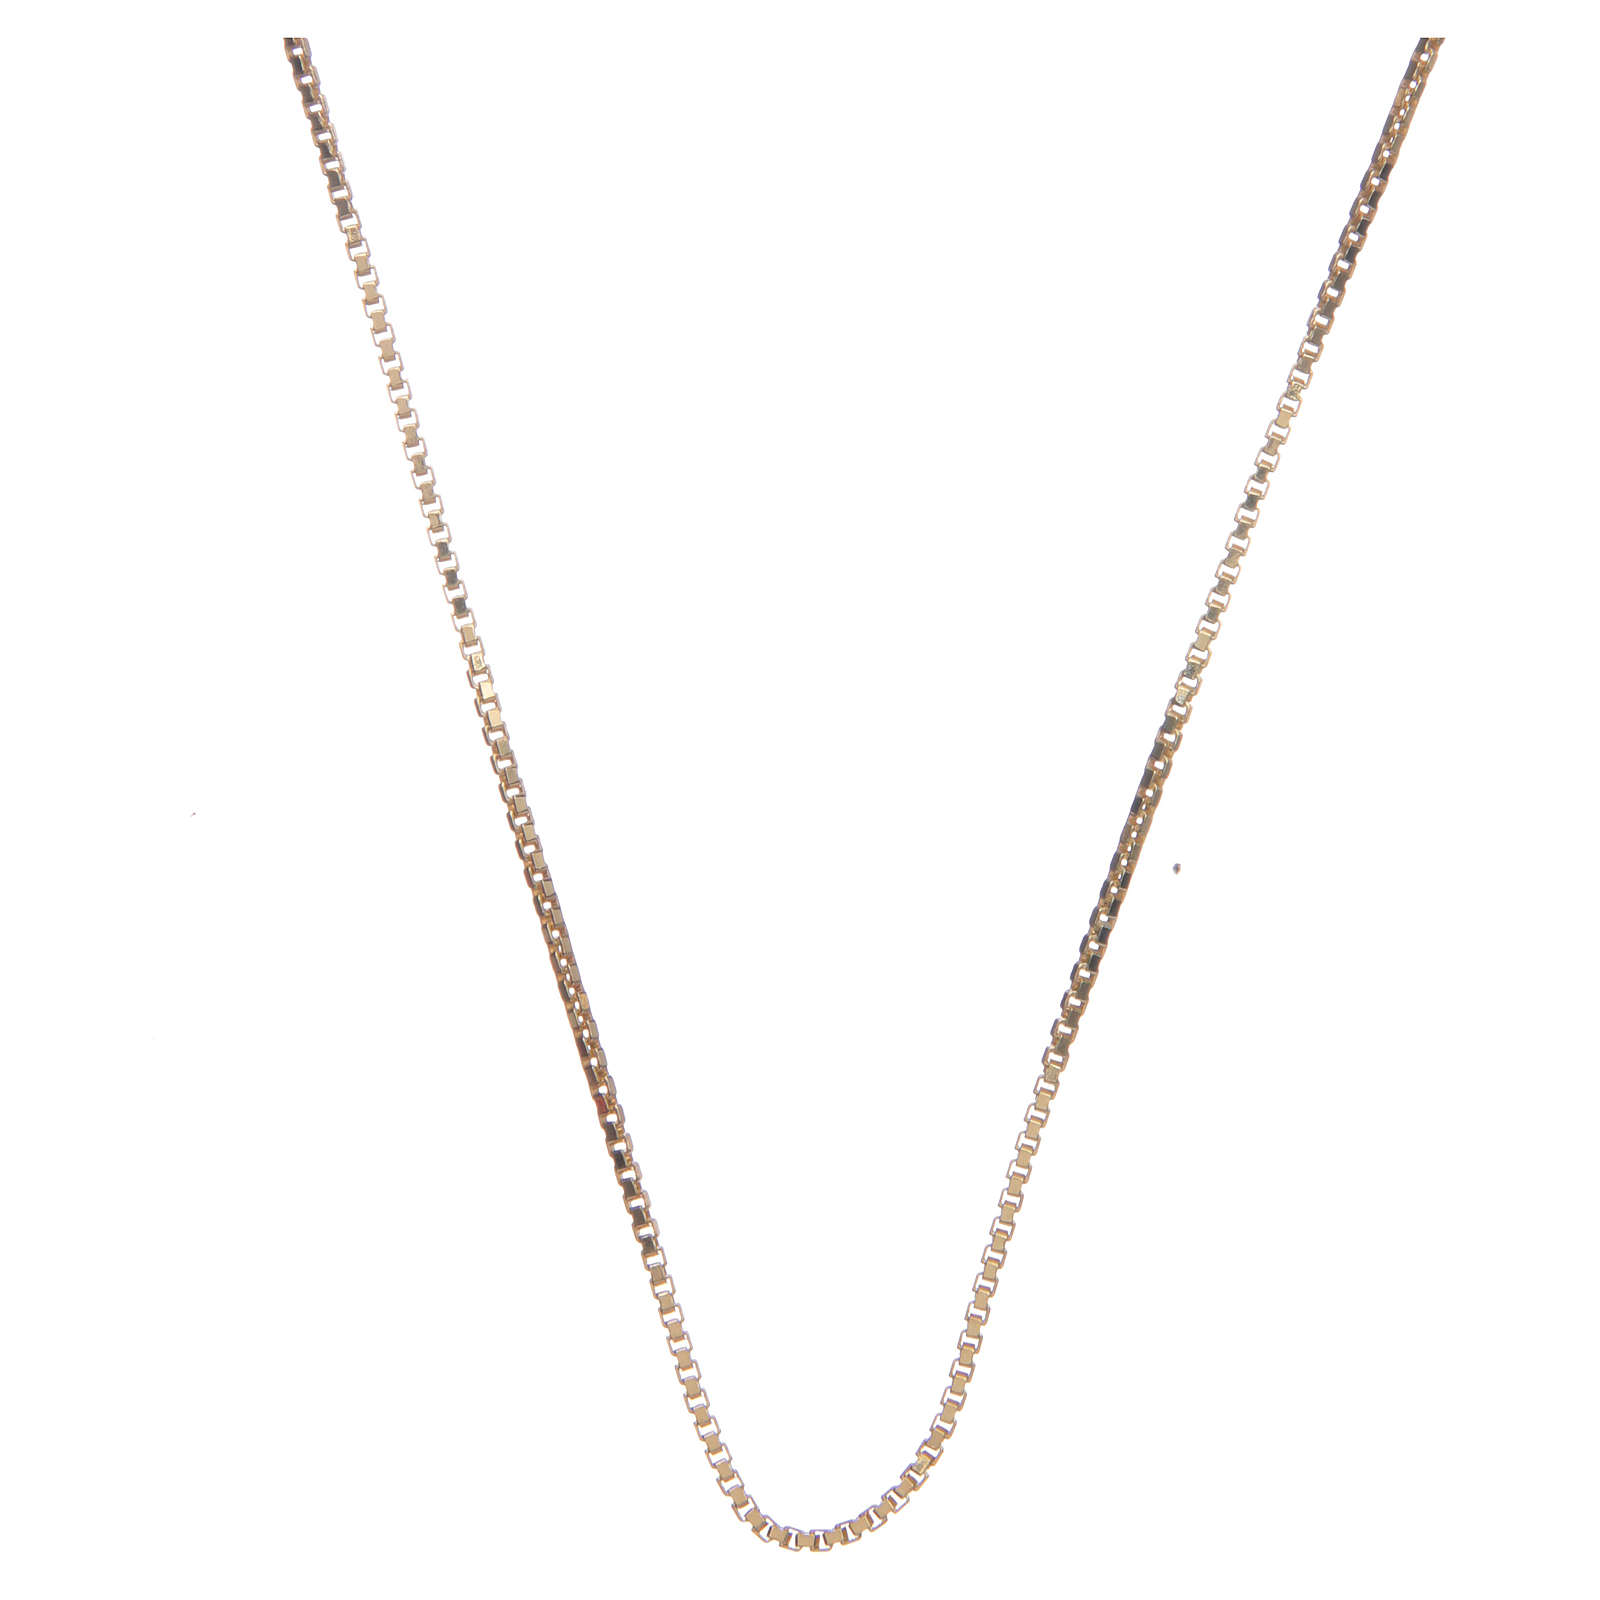 Venetian chain in 925 sterling silver finished in gold, 55 cm length 4